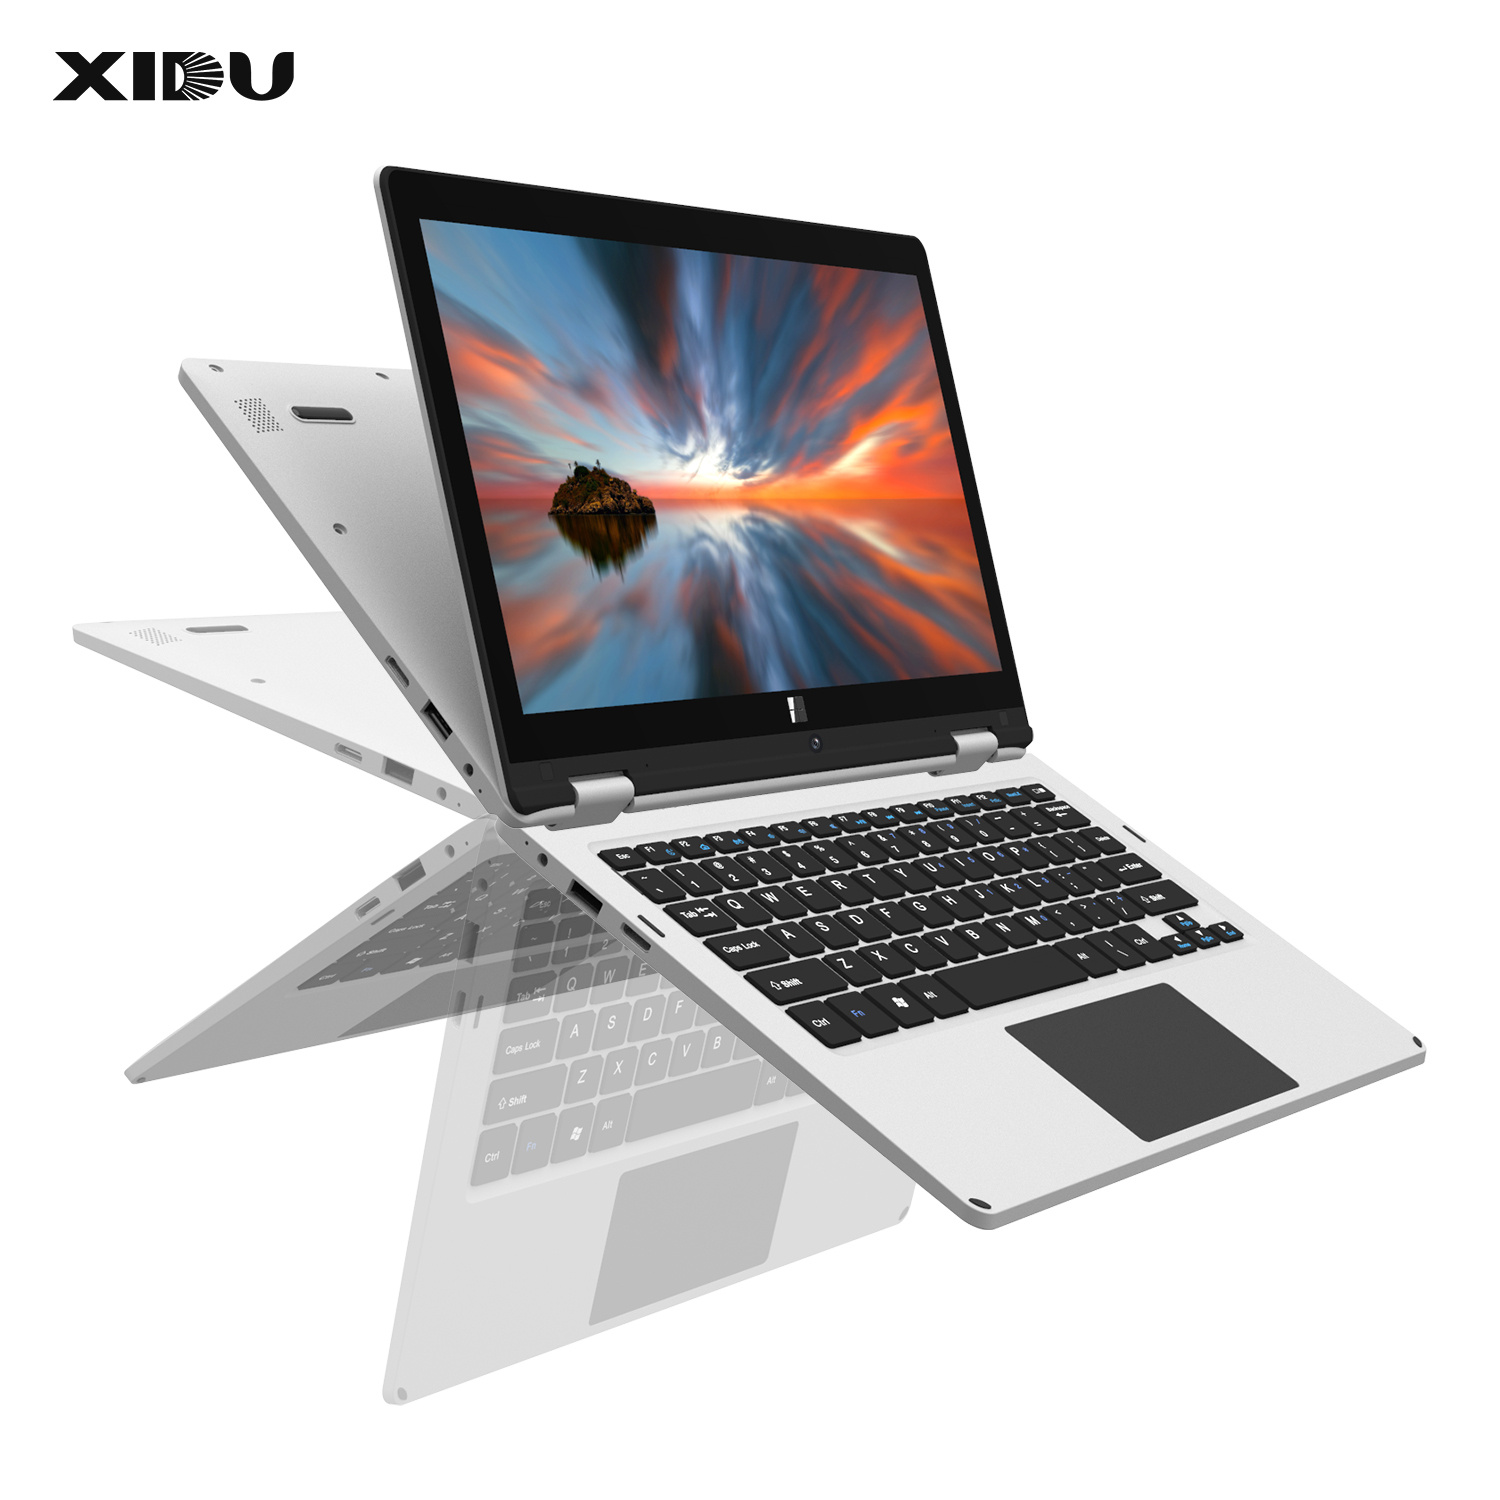 XIDU PhilBook 11.6 inch Laptop